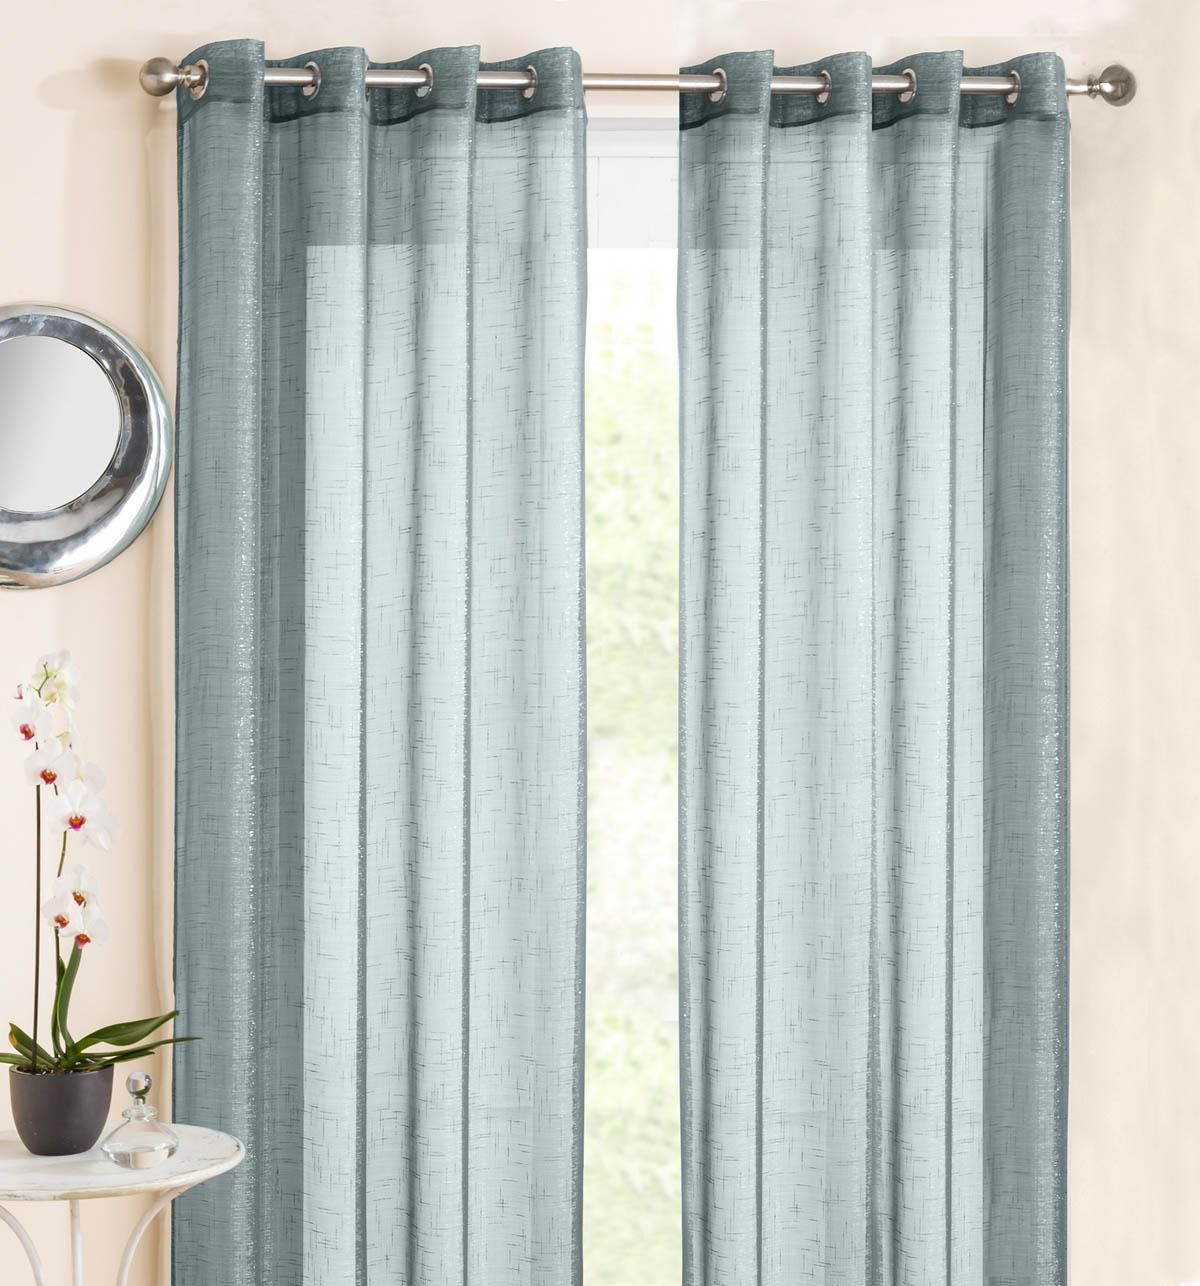 Marrakesh Eyelet Voile Panel Duck Egg Blue | Affordable Curtain ... for Grey And White Voile Curtains  146hul